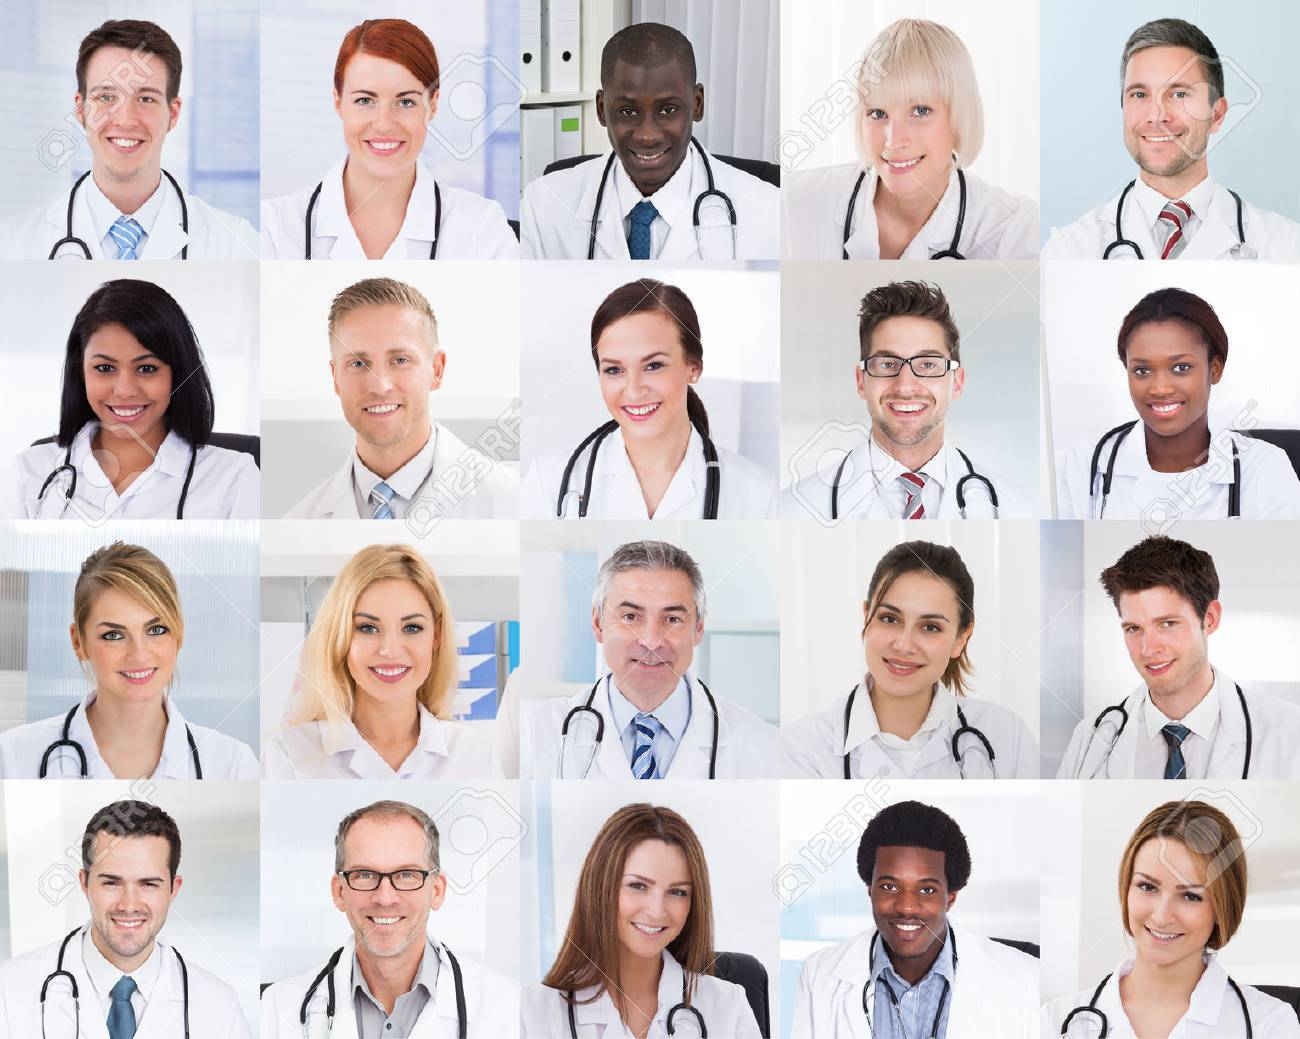 Collage Of Smiling Group Of Doctors With Different Multiethnic Standard-Bild - 69612756